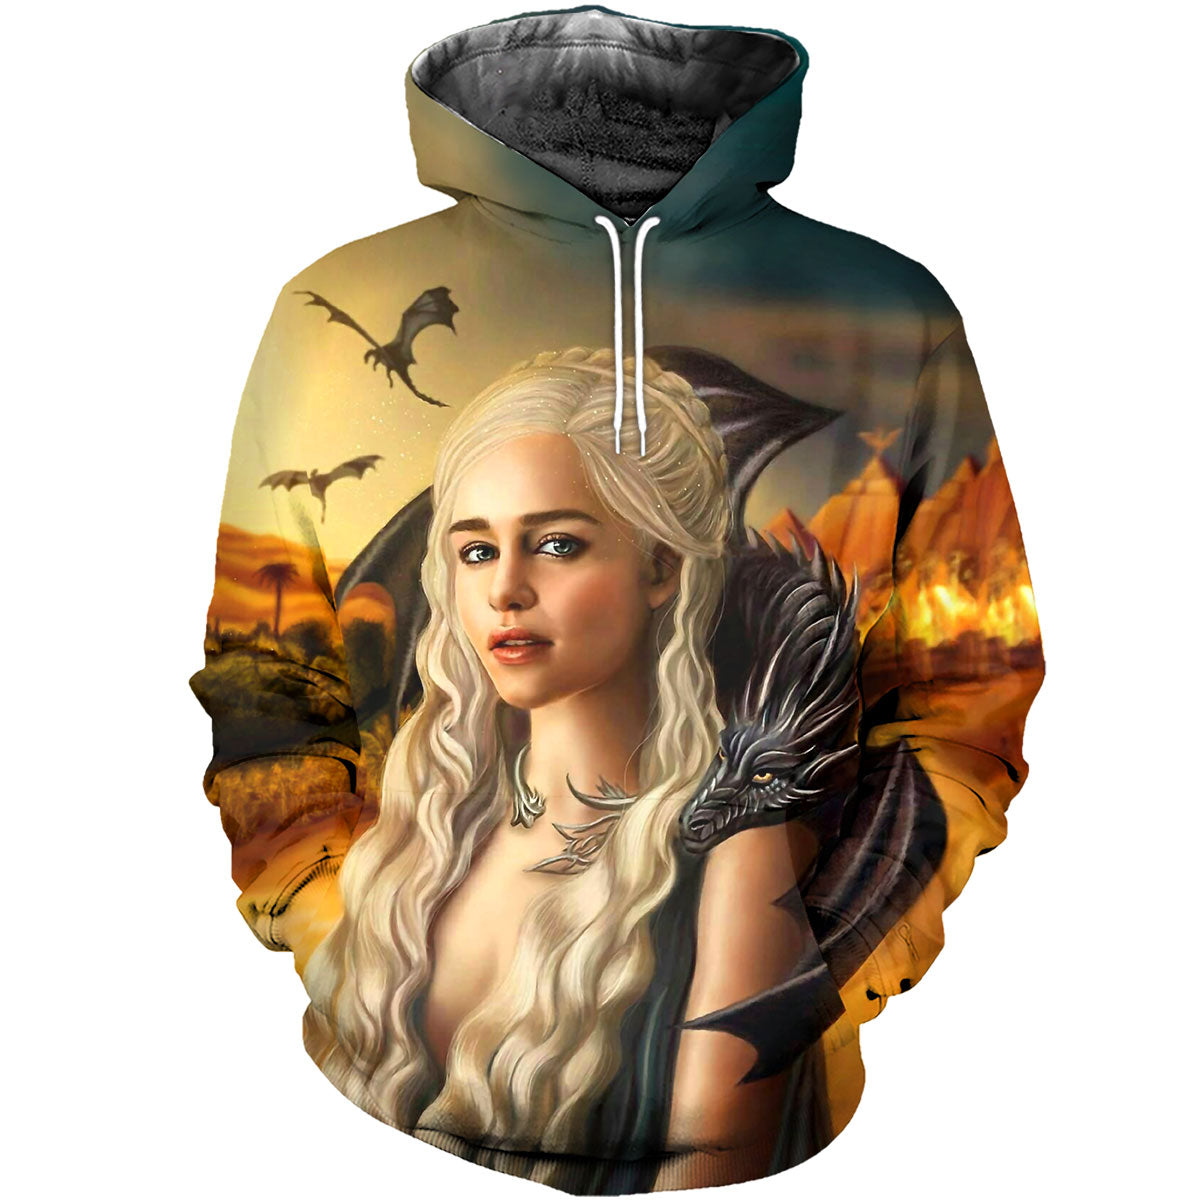 3D All Over Printed Mother of Dragons Shirts and Shorts